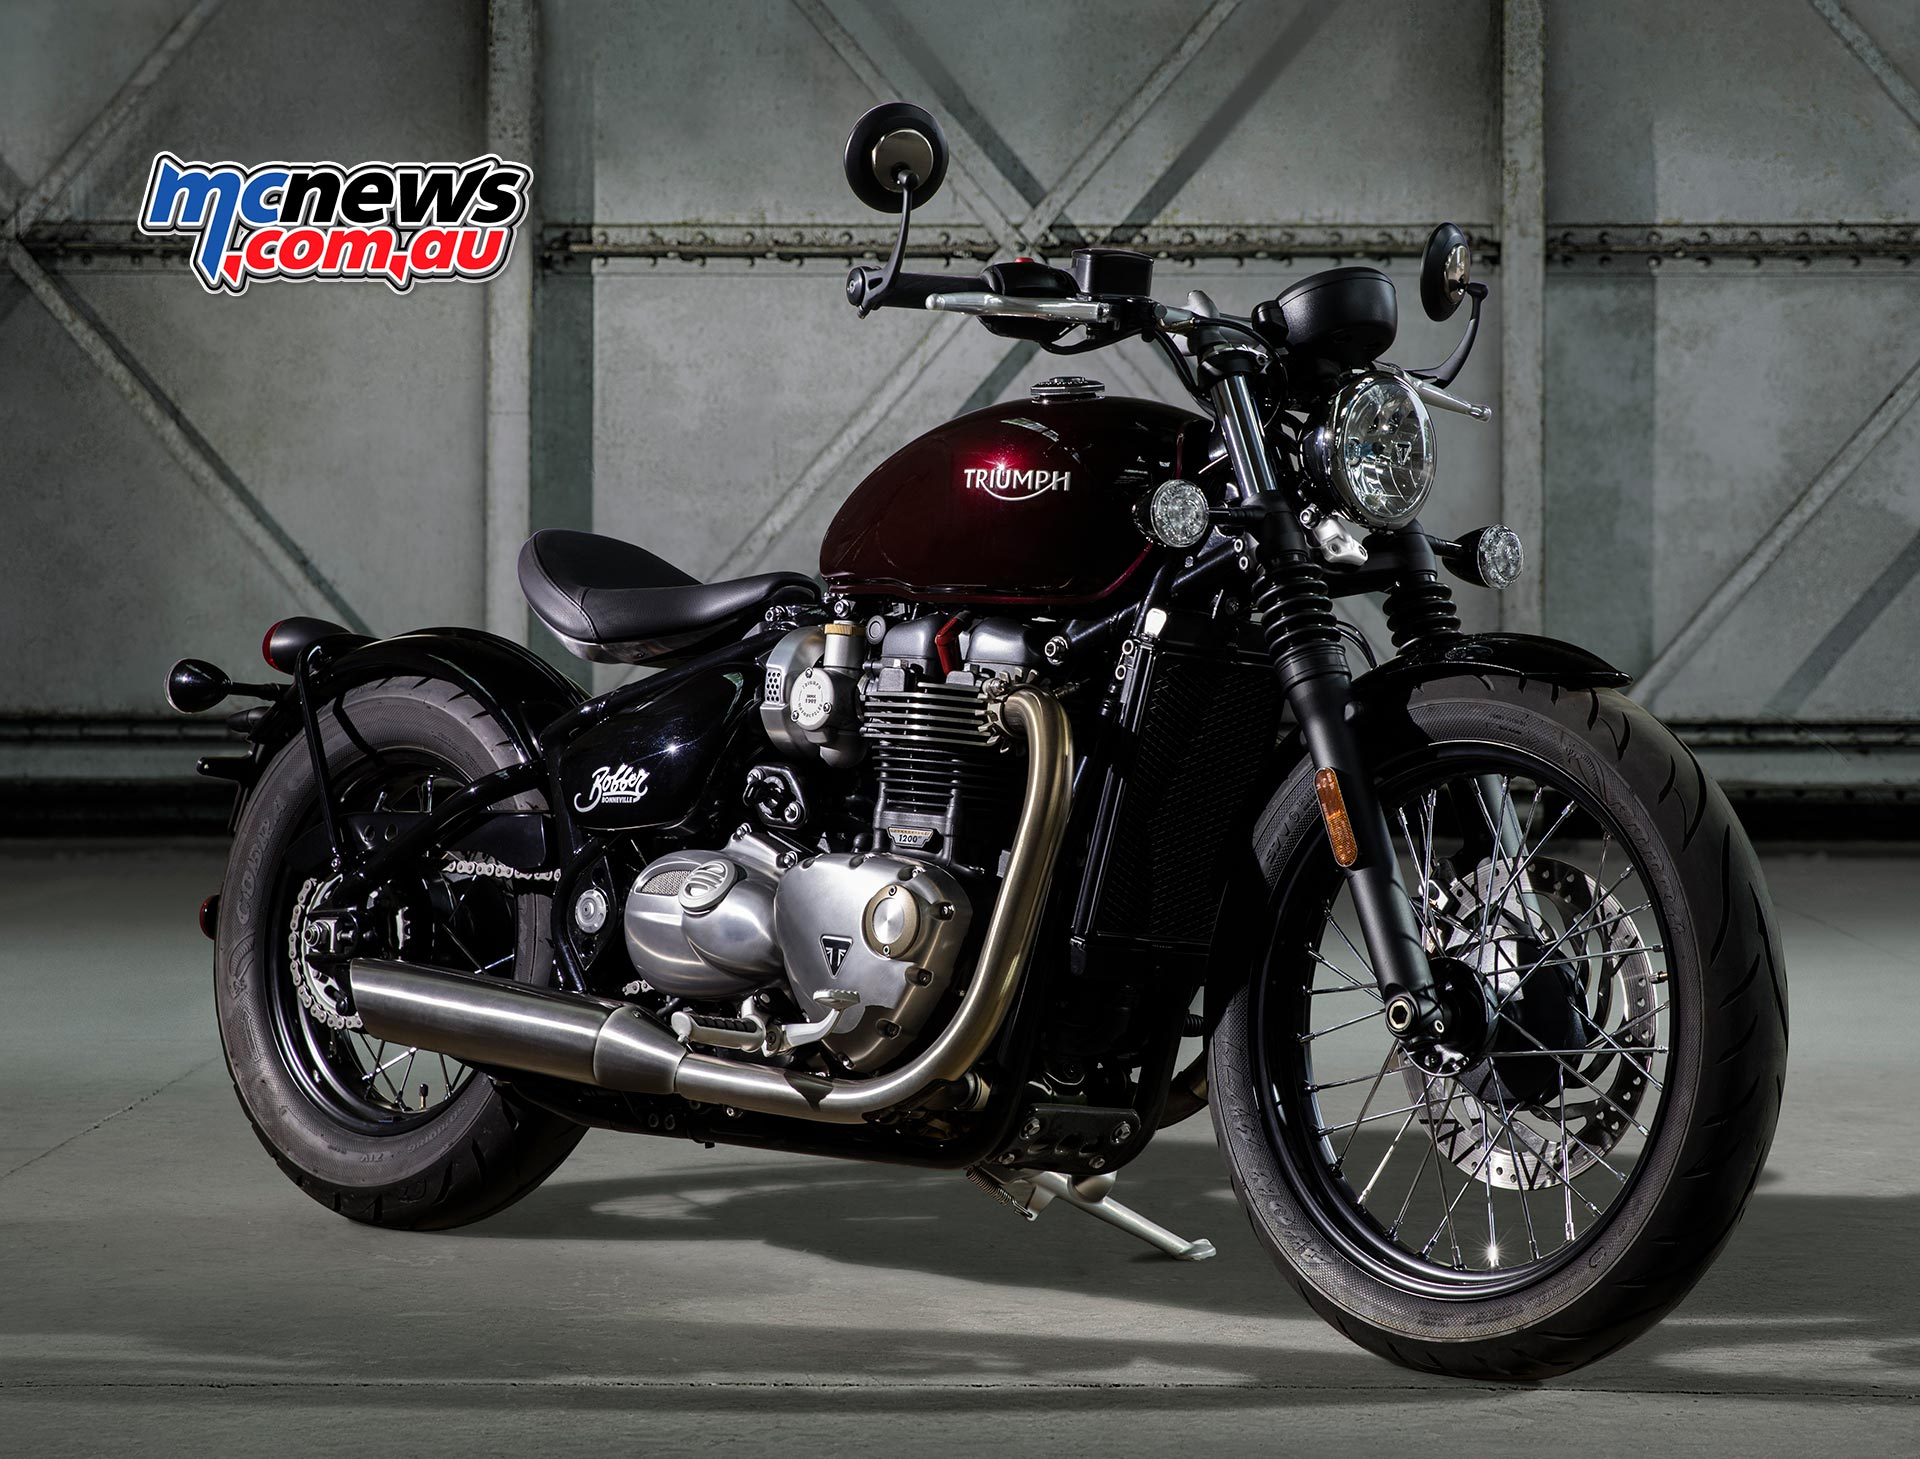 If there was ever any doubt that Triumph is gunning for some of the huge market share occupied by Harley-Davidson the new Bonneville Bobber certainly puts paid to that.